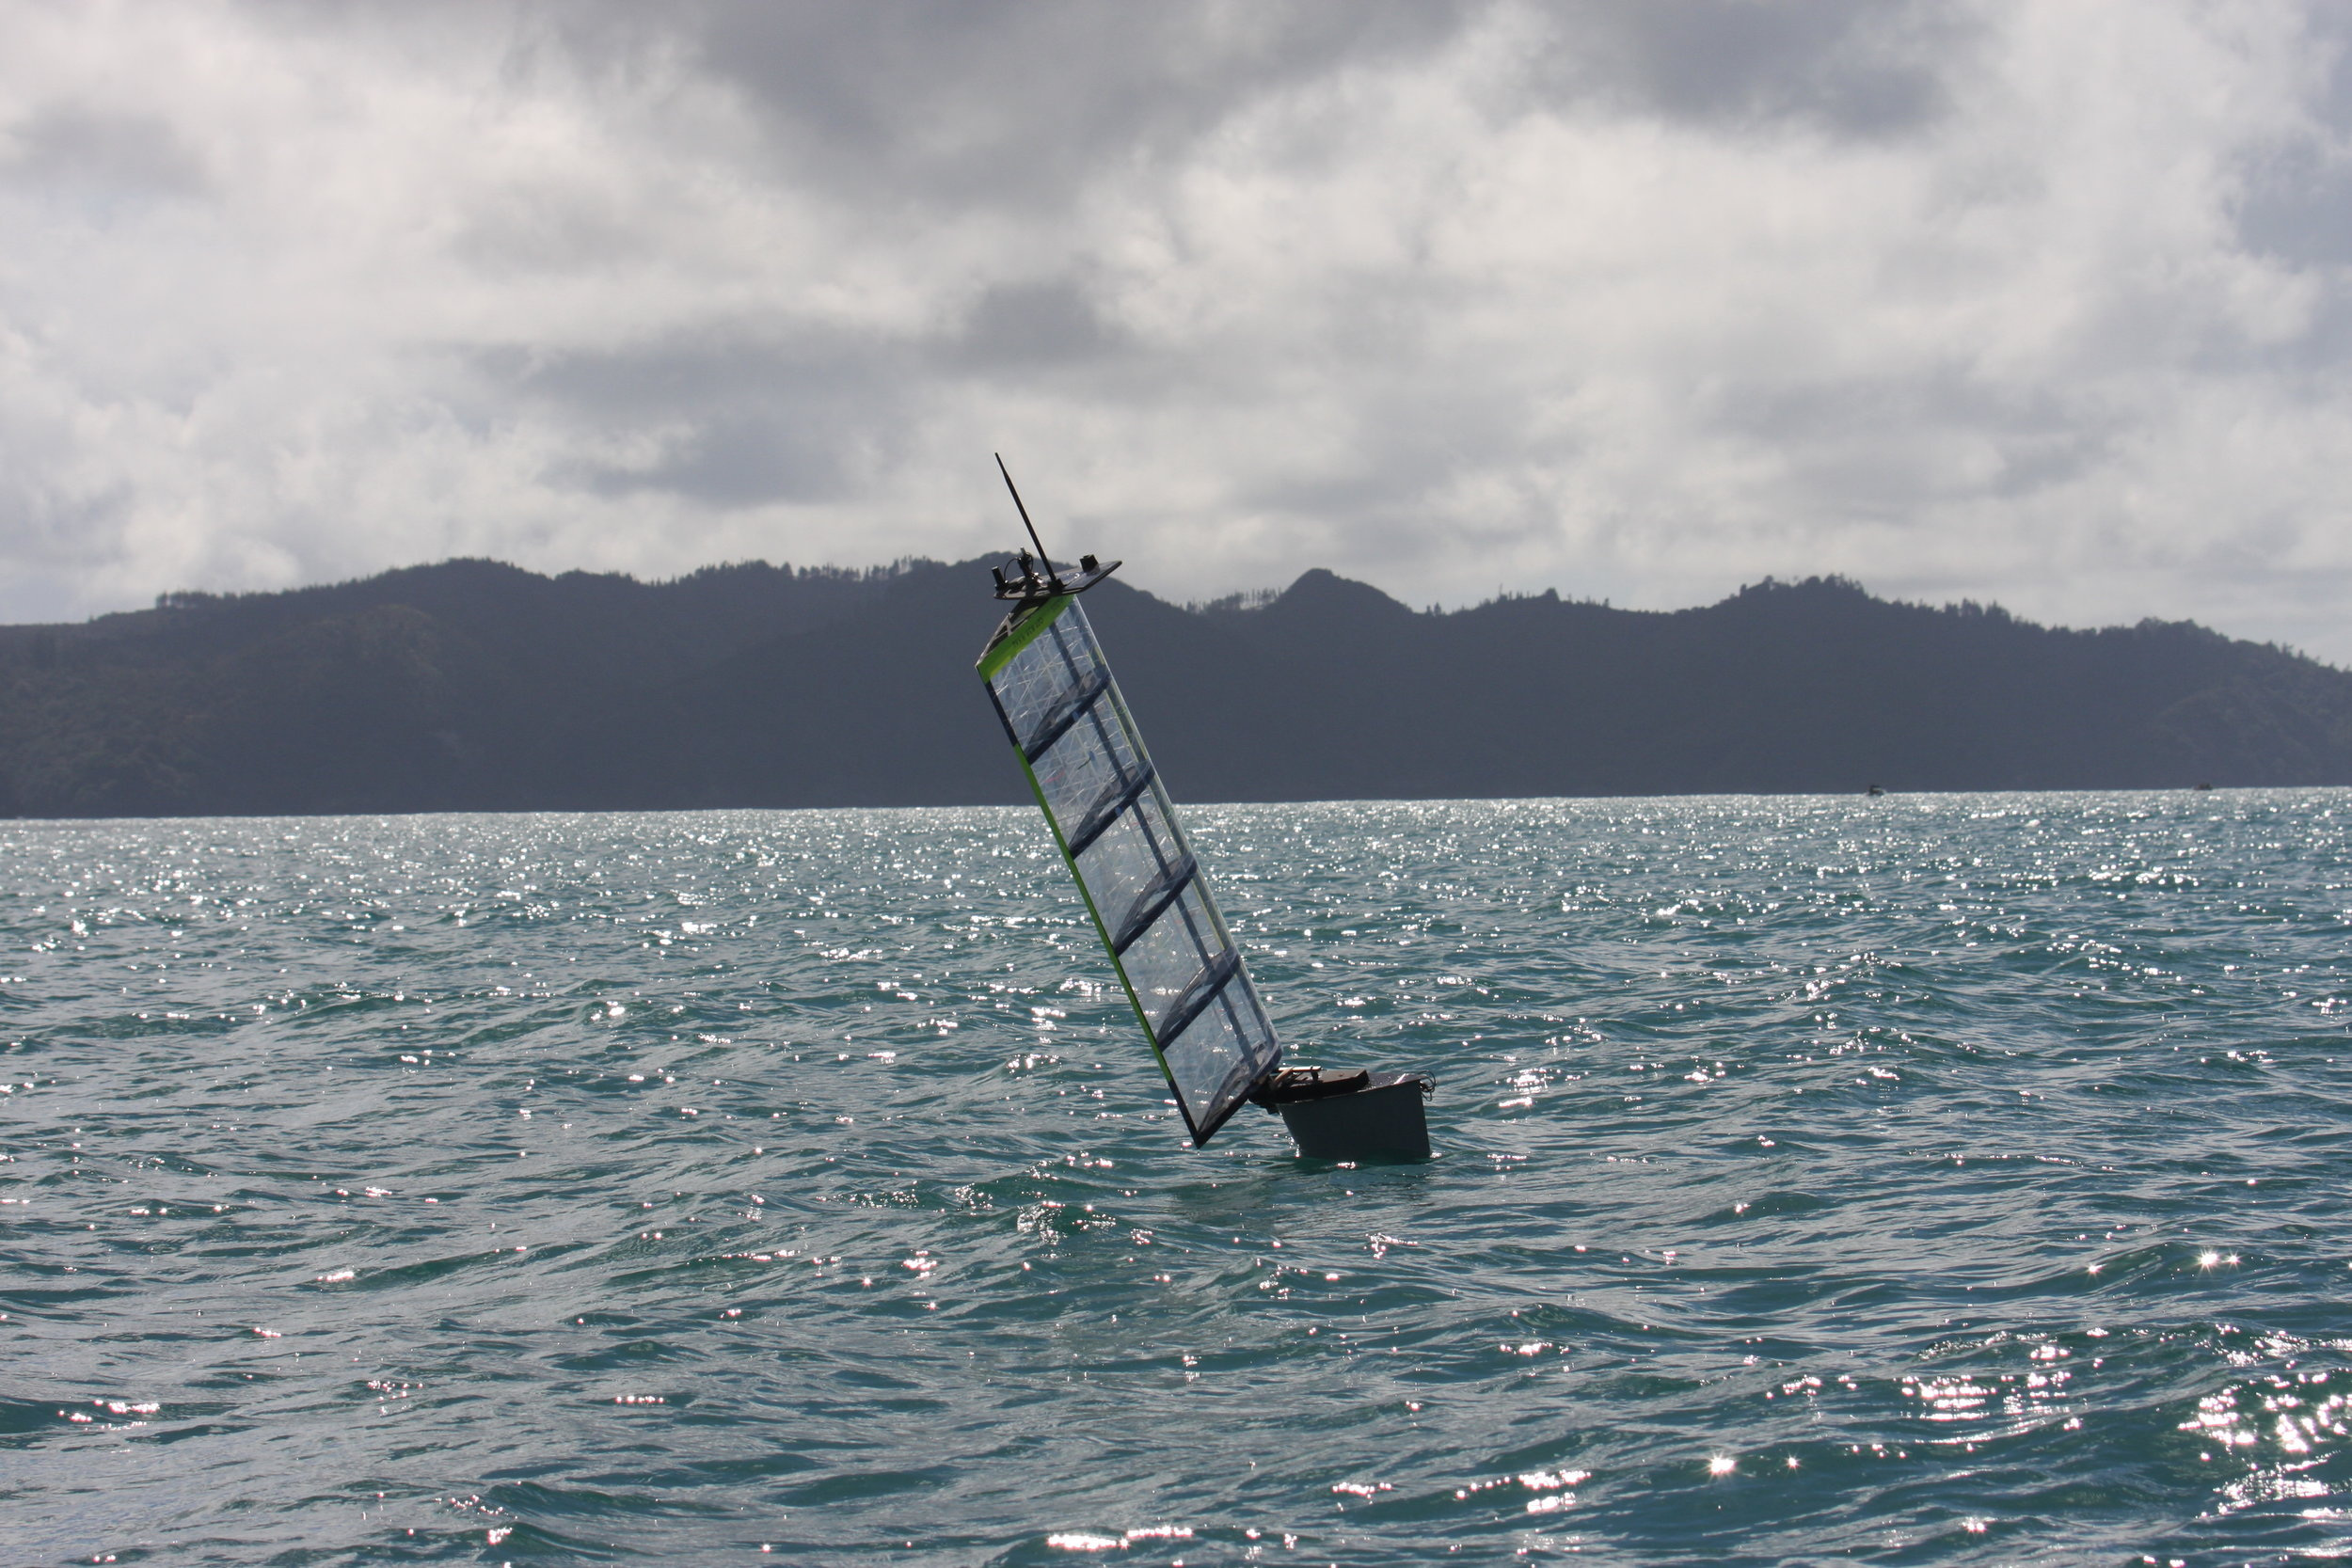 Ocean testing off NZ - 24 hour autonomous waypoint sailing off the south island of New Zealand